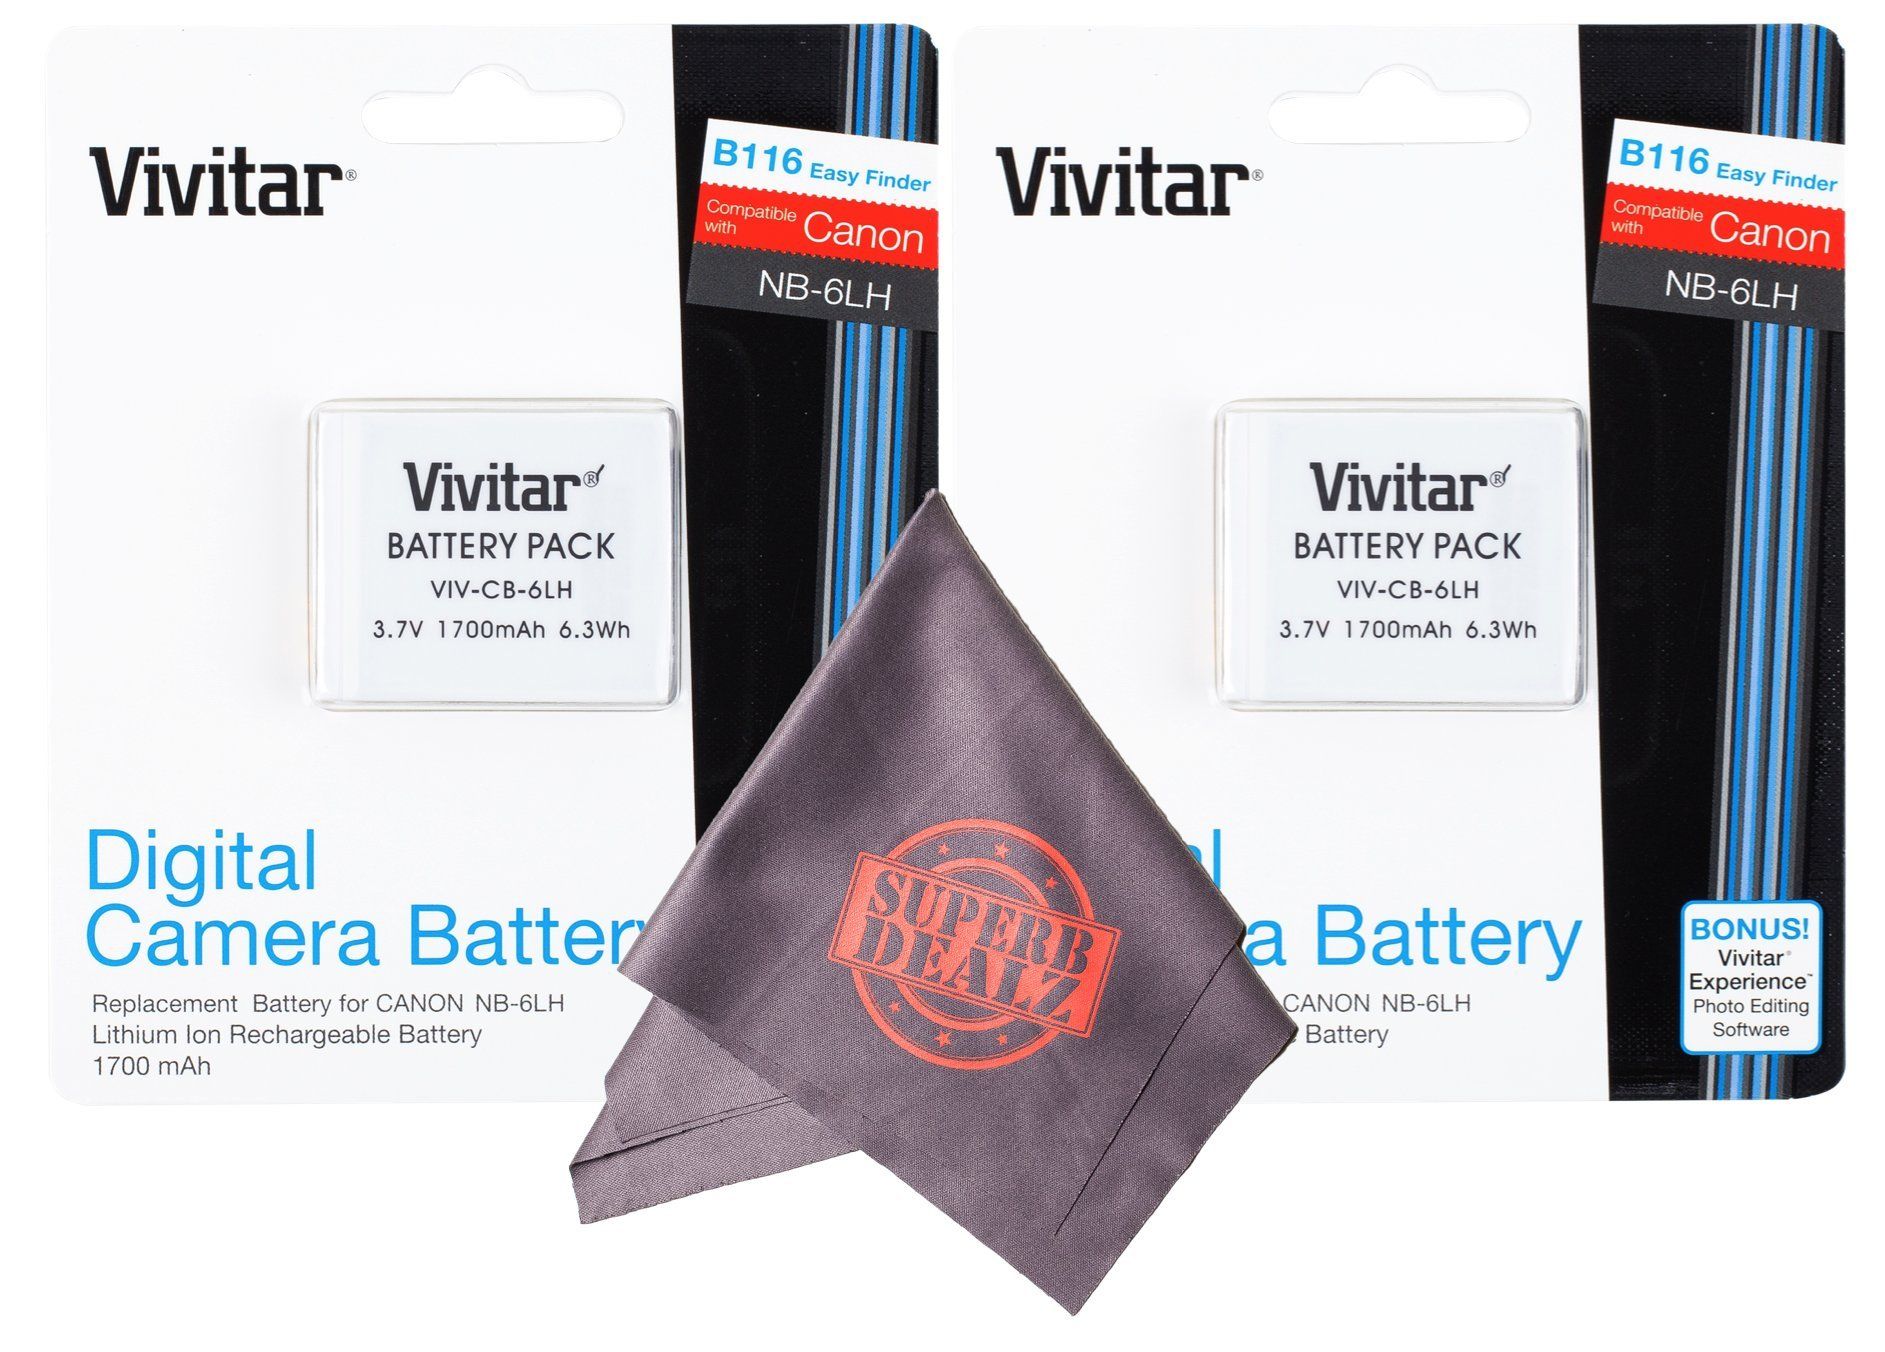 2 Pack Vivitar NB-6L / NB-6LH Ultra High Capacity Rechargeable 1700 mAh Li-ion Batteries + Microfiber Lens Cleaning Cloth for CANON PowerShot Cameras (Canon NB-6L / NB-6LH Replacement) by Vivitar